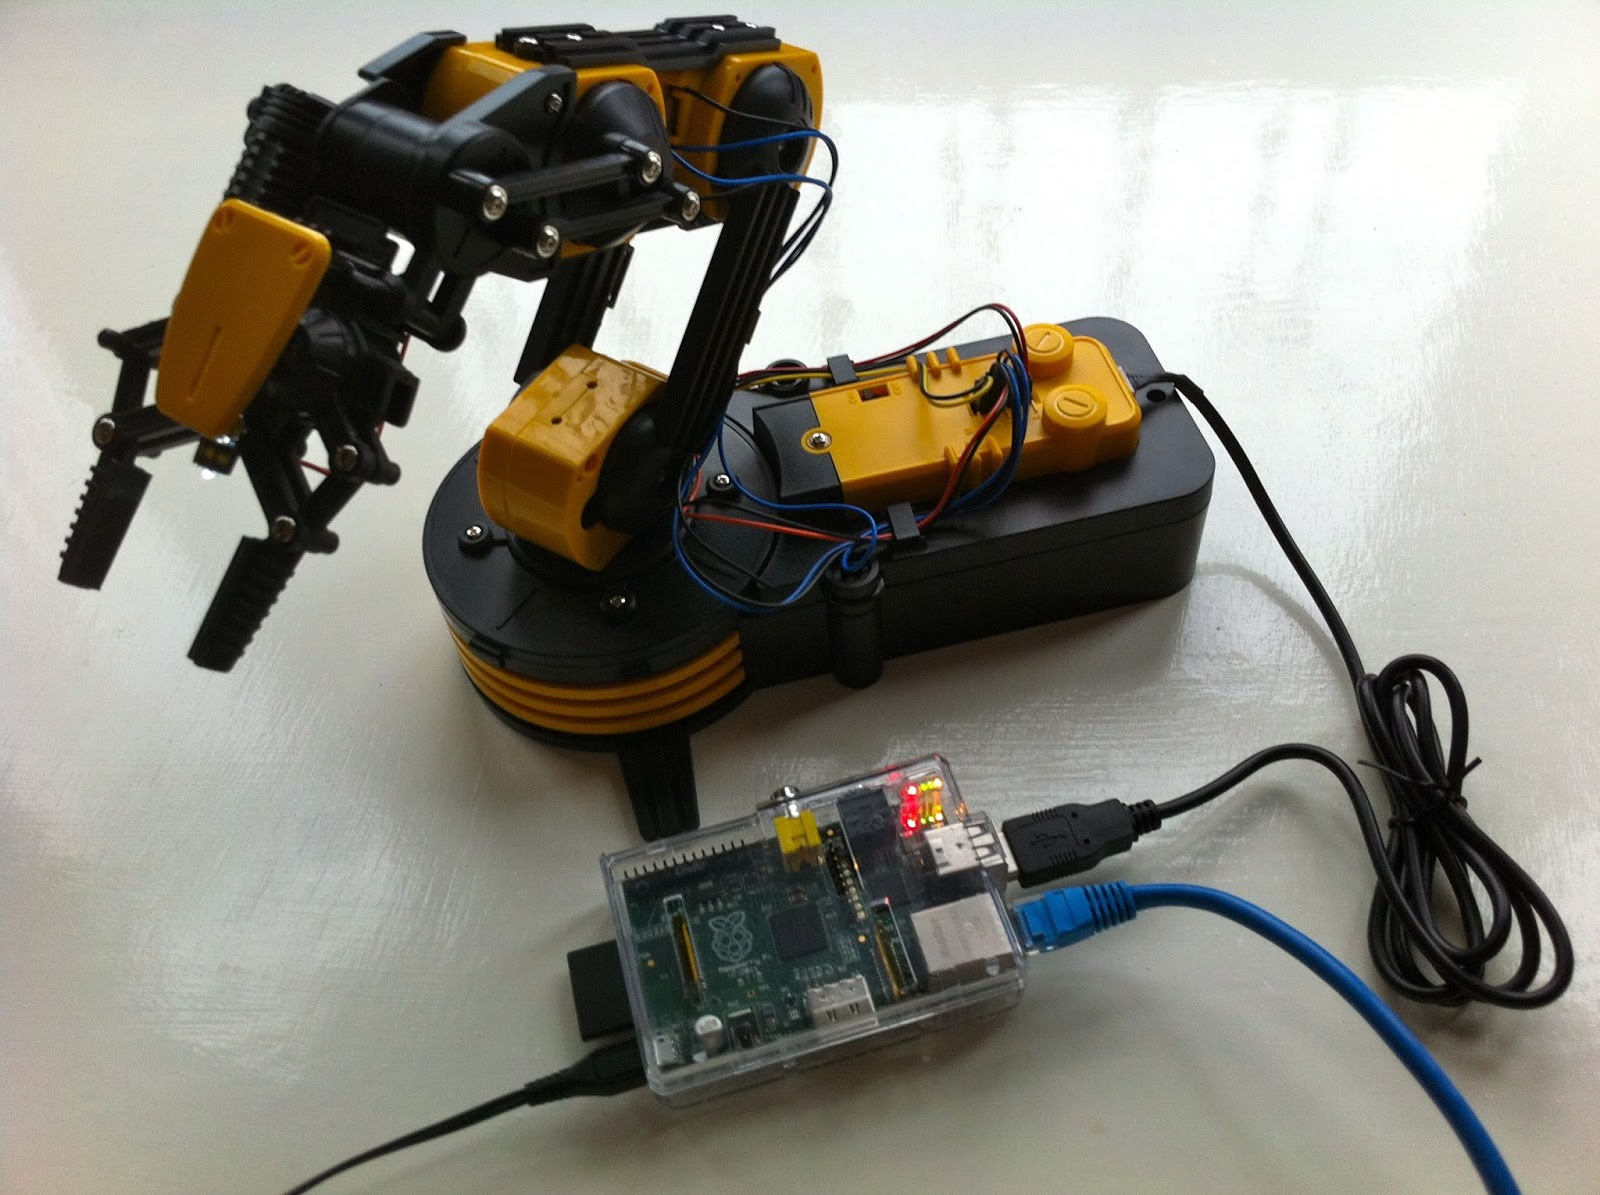 The OWI535 Maplin Robot Arm Battle Bot